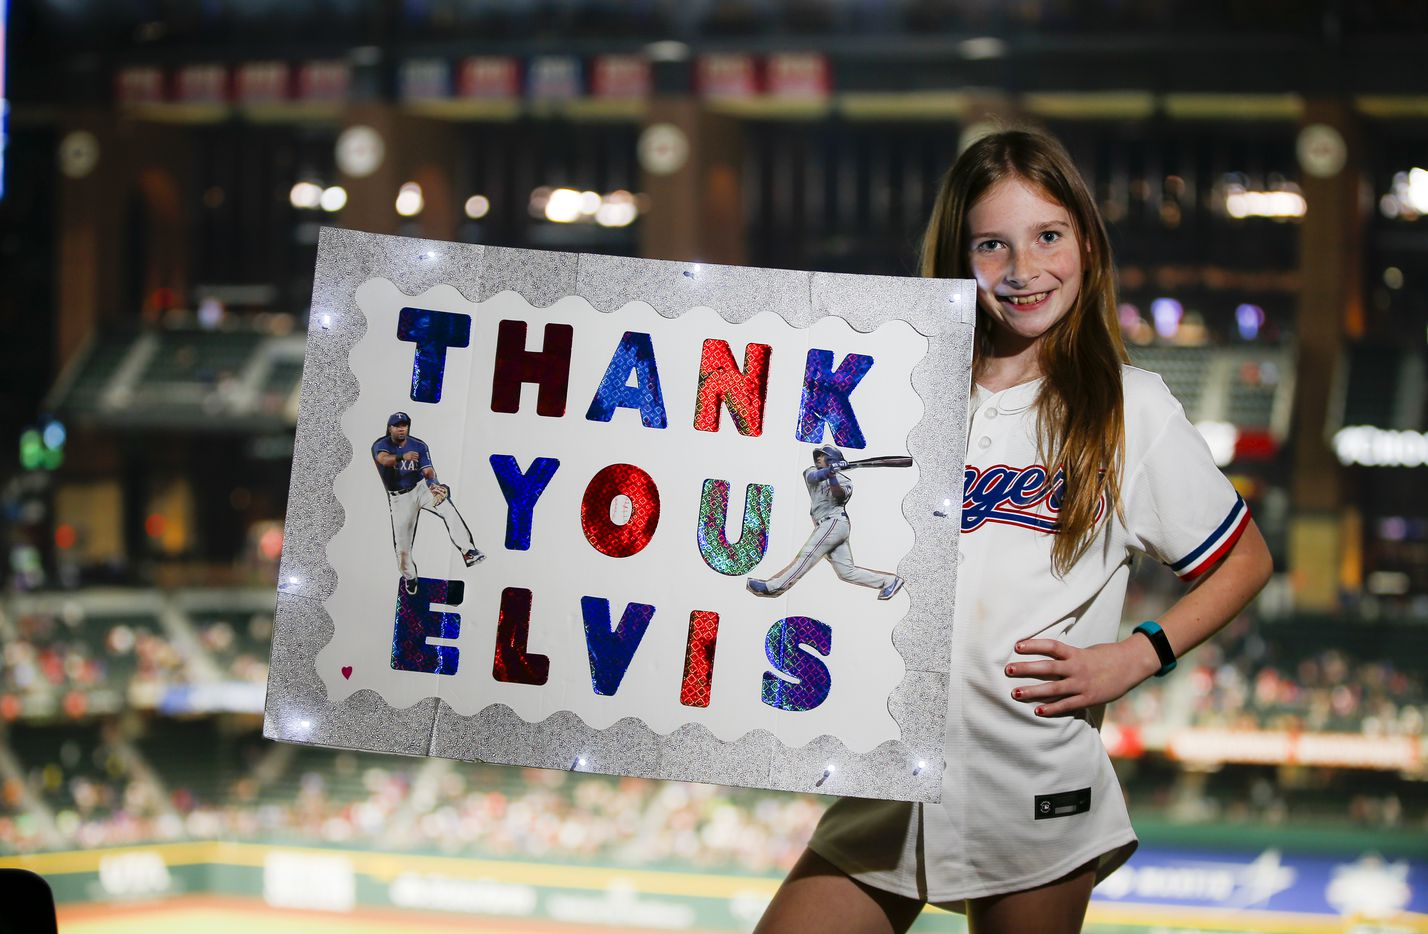 Emma Briceno, 10, a Elvis Andrus fan, poses for a photo during a baseball game between the Oakland Athletics and Texas Rangers in Arlington, Monday, June 21, 2021. (Brandon Wade/Special Contributor)